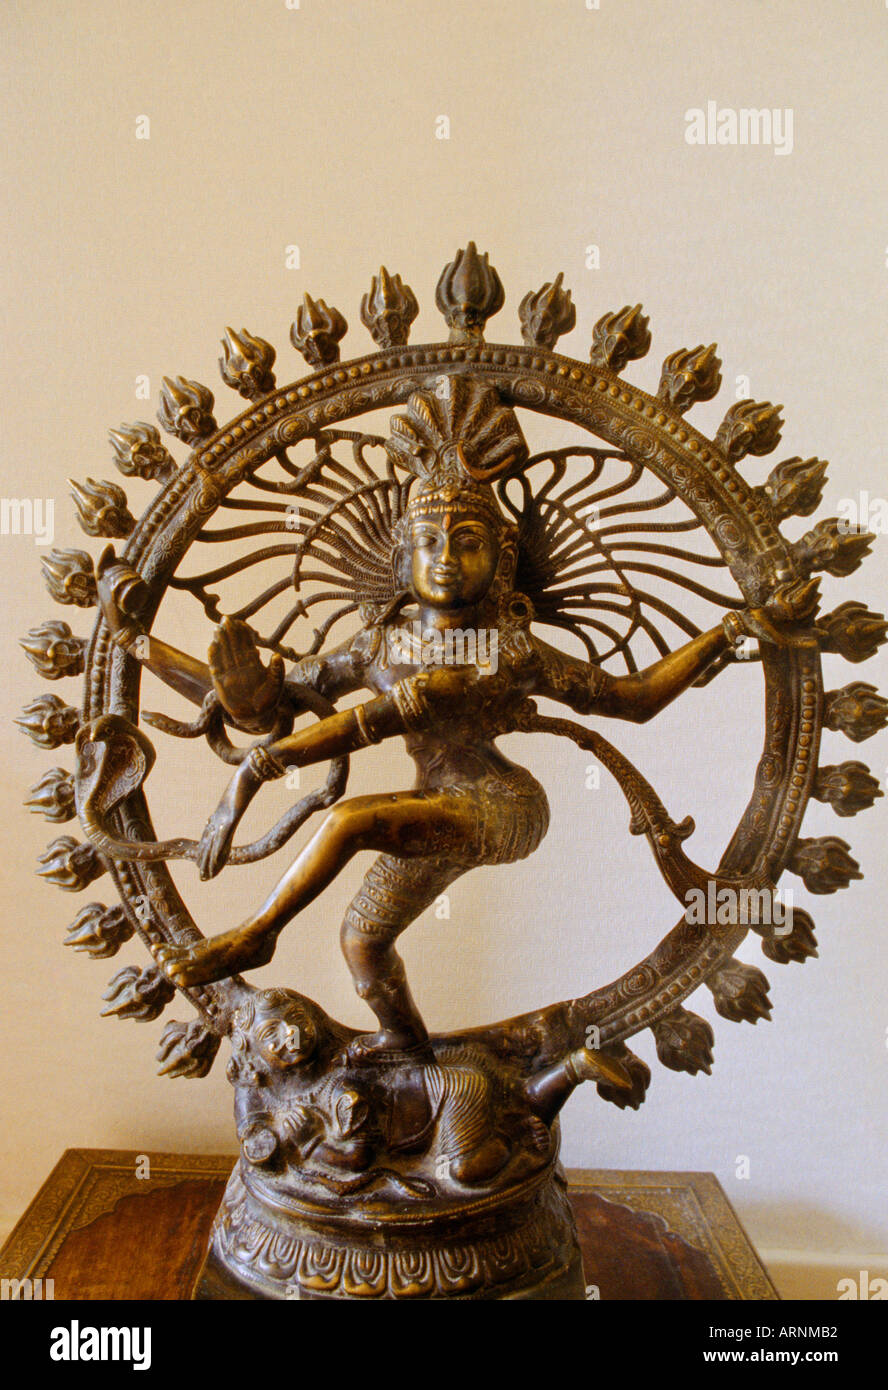 India Gods Dancing Shiva - Nataraja Dancing in Ring of Fire Cosmic Dance - Bronze - Stock Image